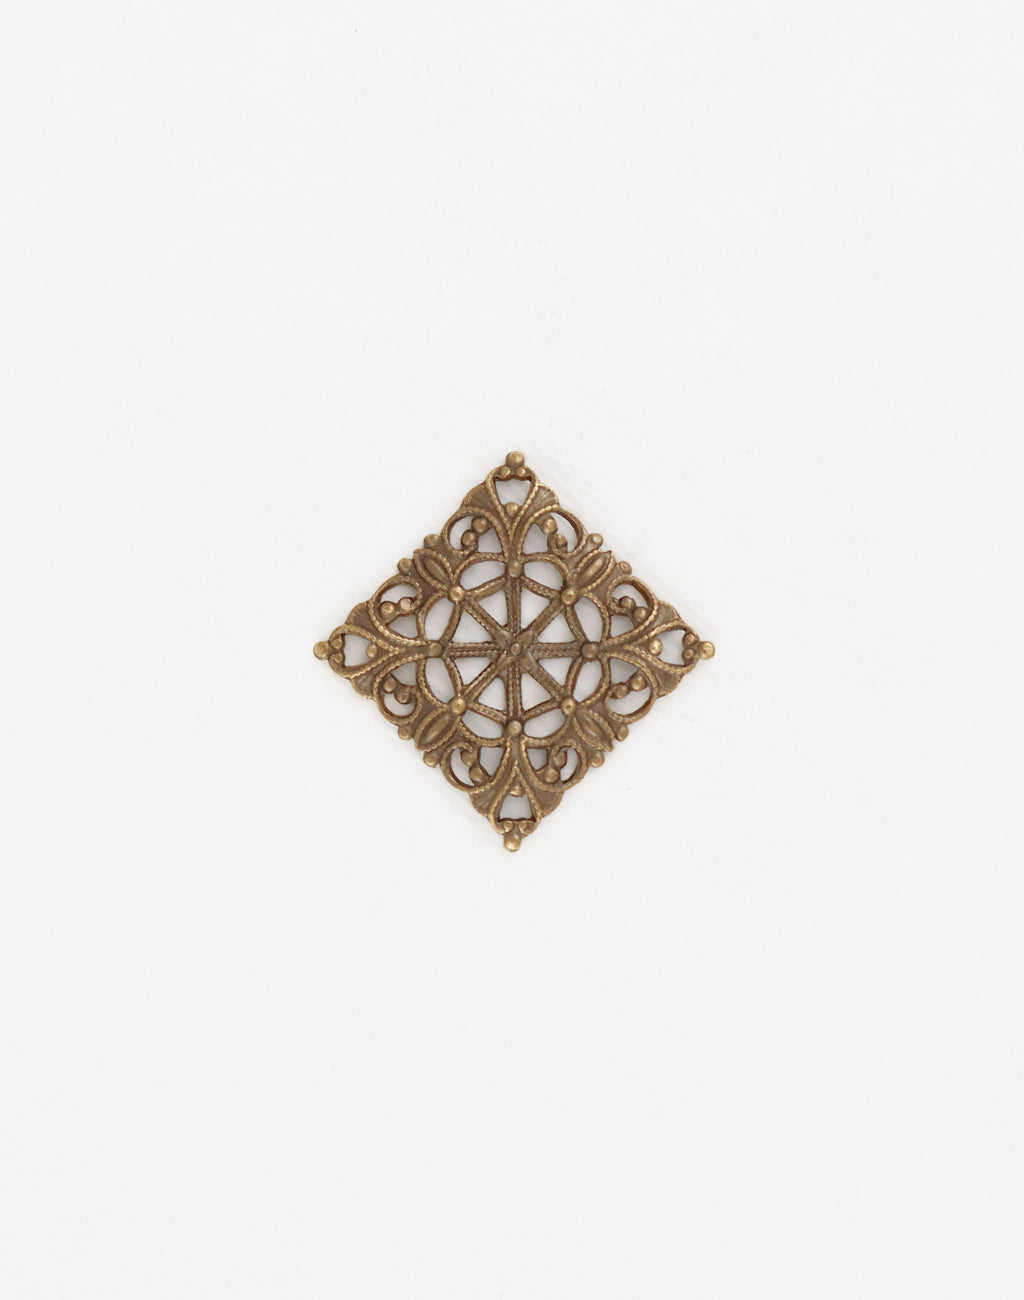 Moroccan Tile, 20x20mm, (1pc)